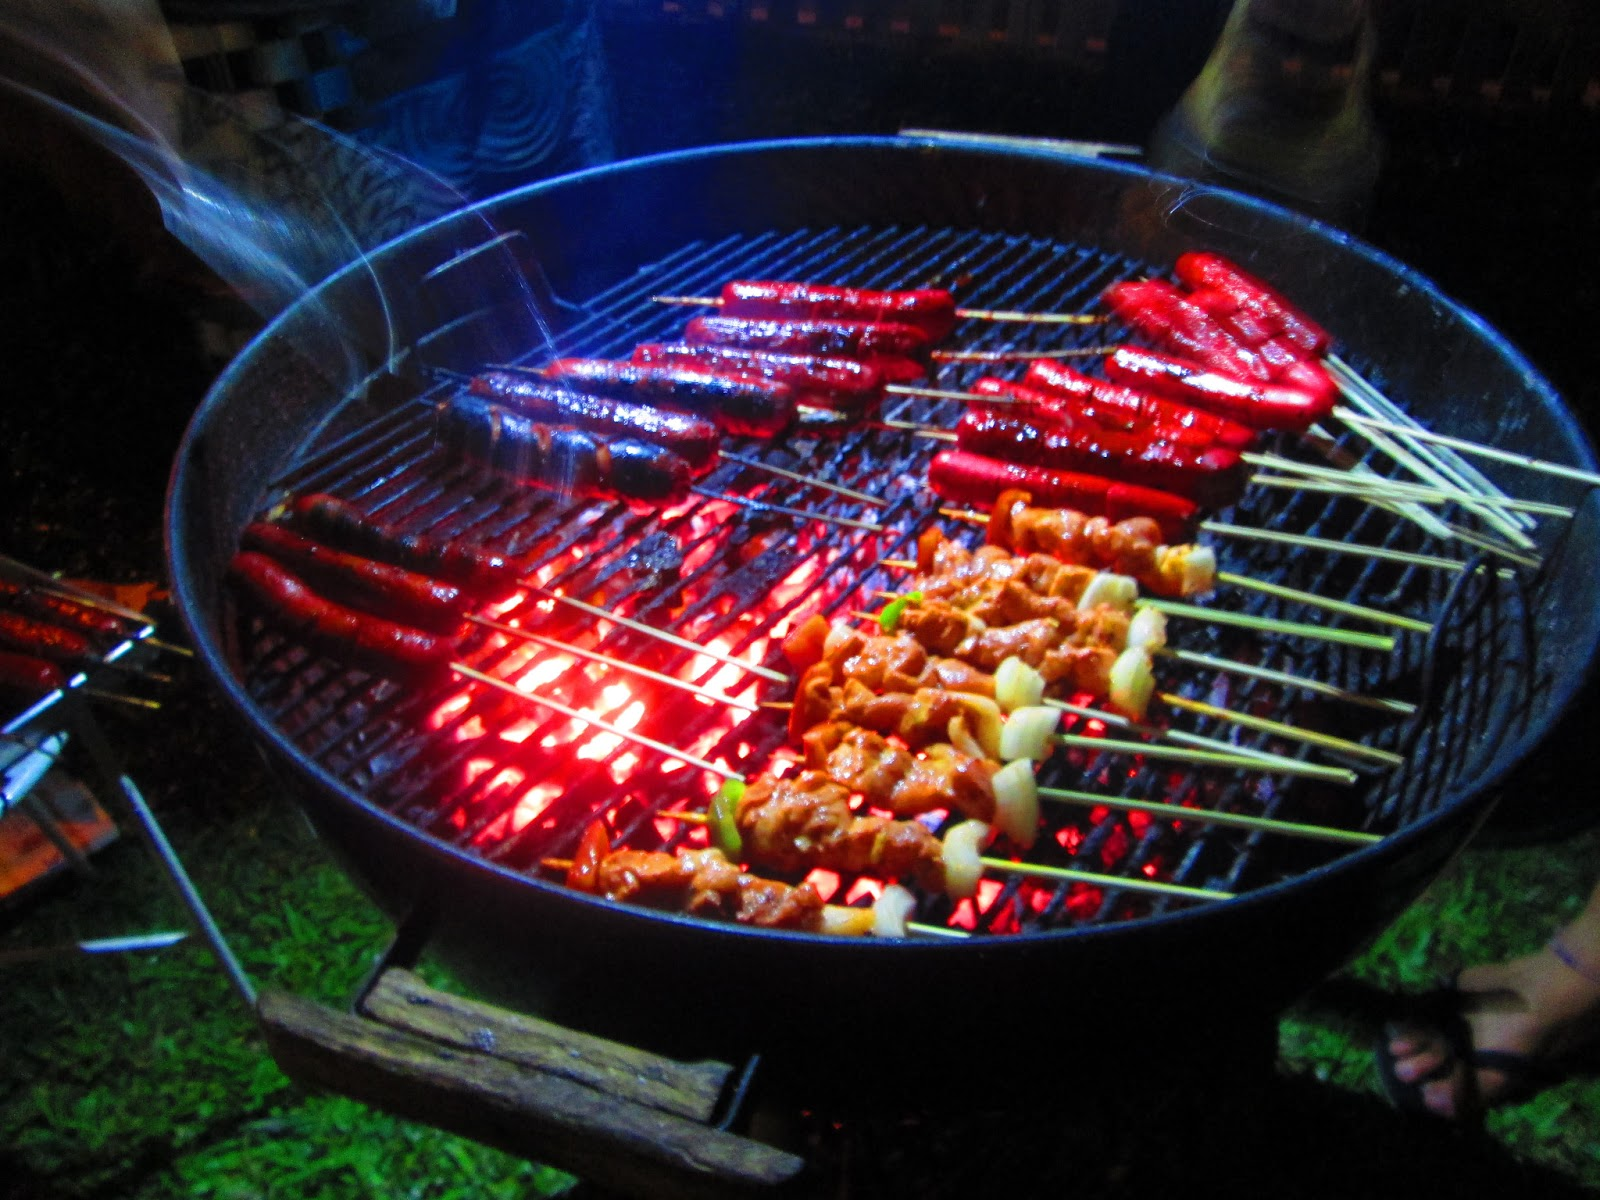 9 Steps On How To Make Your Own Barbecue Party Fast And The Furious Style Nines Vs